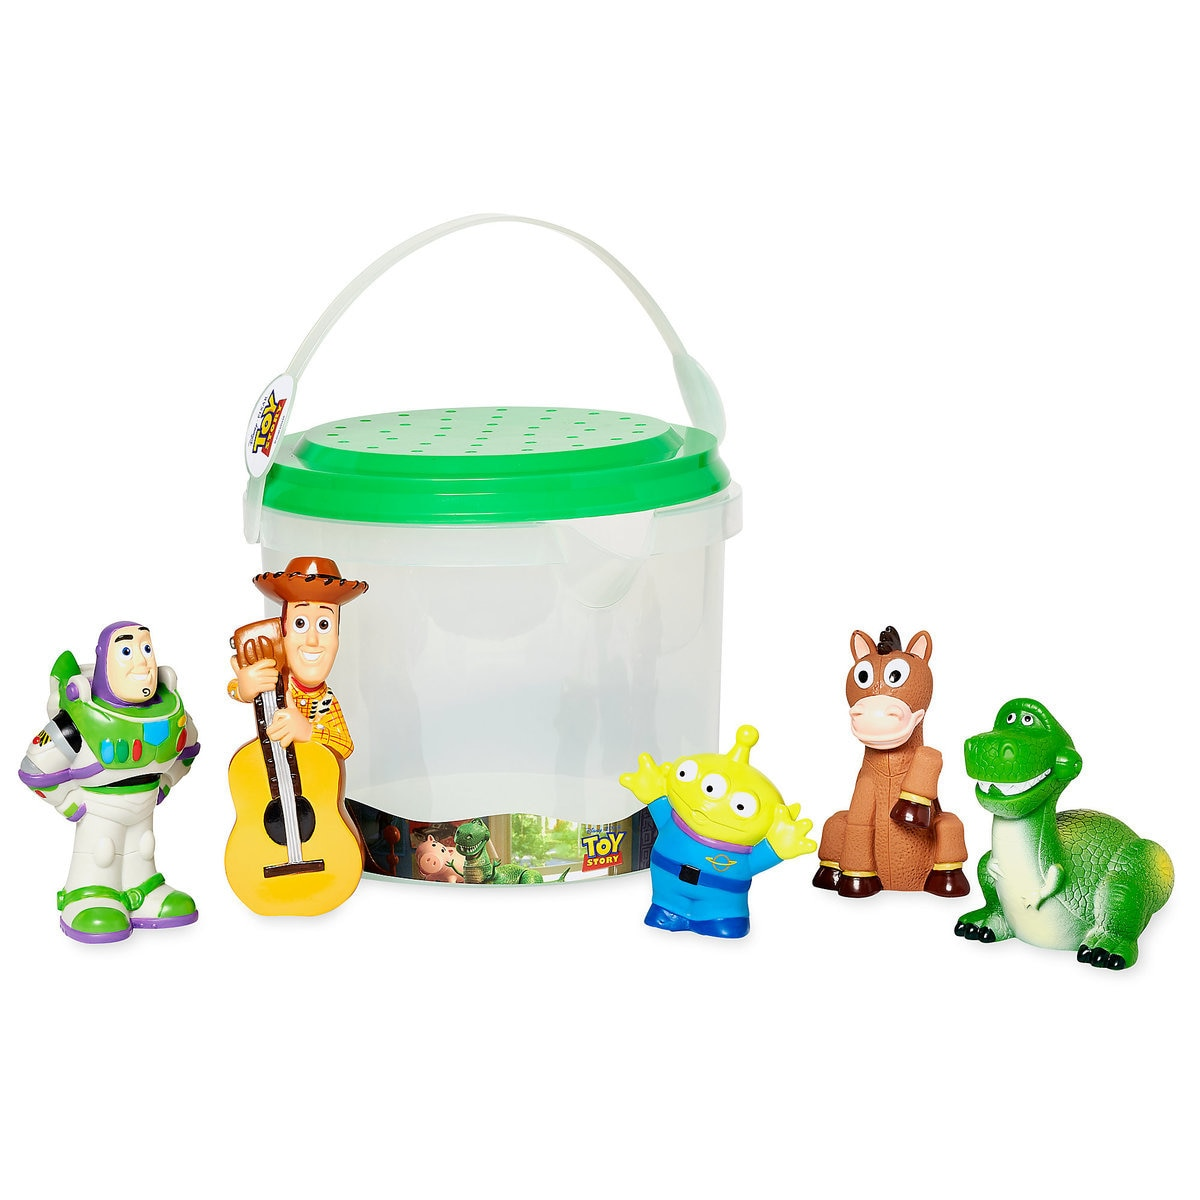 4702ff673a6 Product Image of Toy Story Bath Set # 1